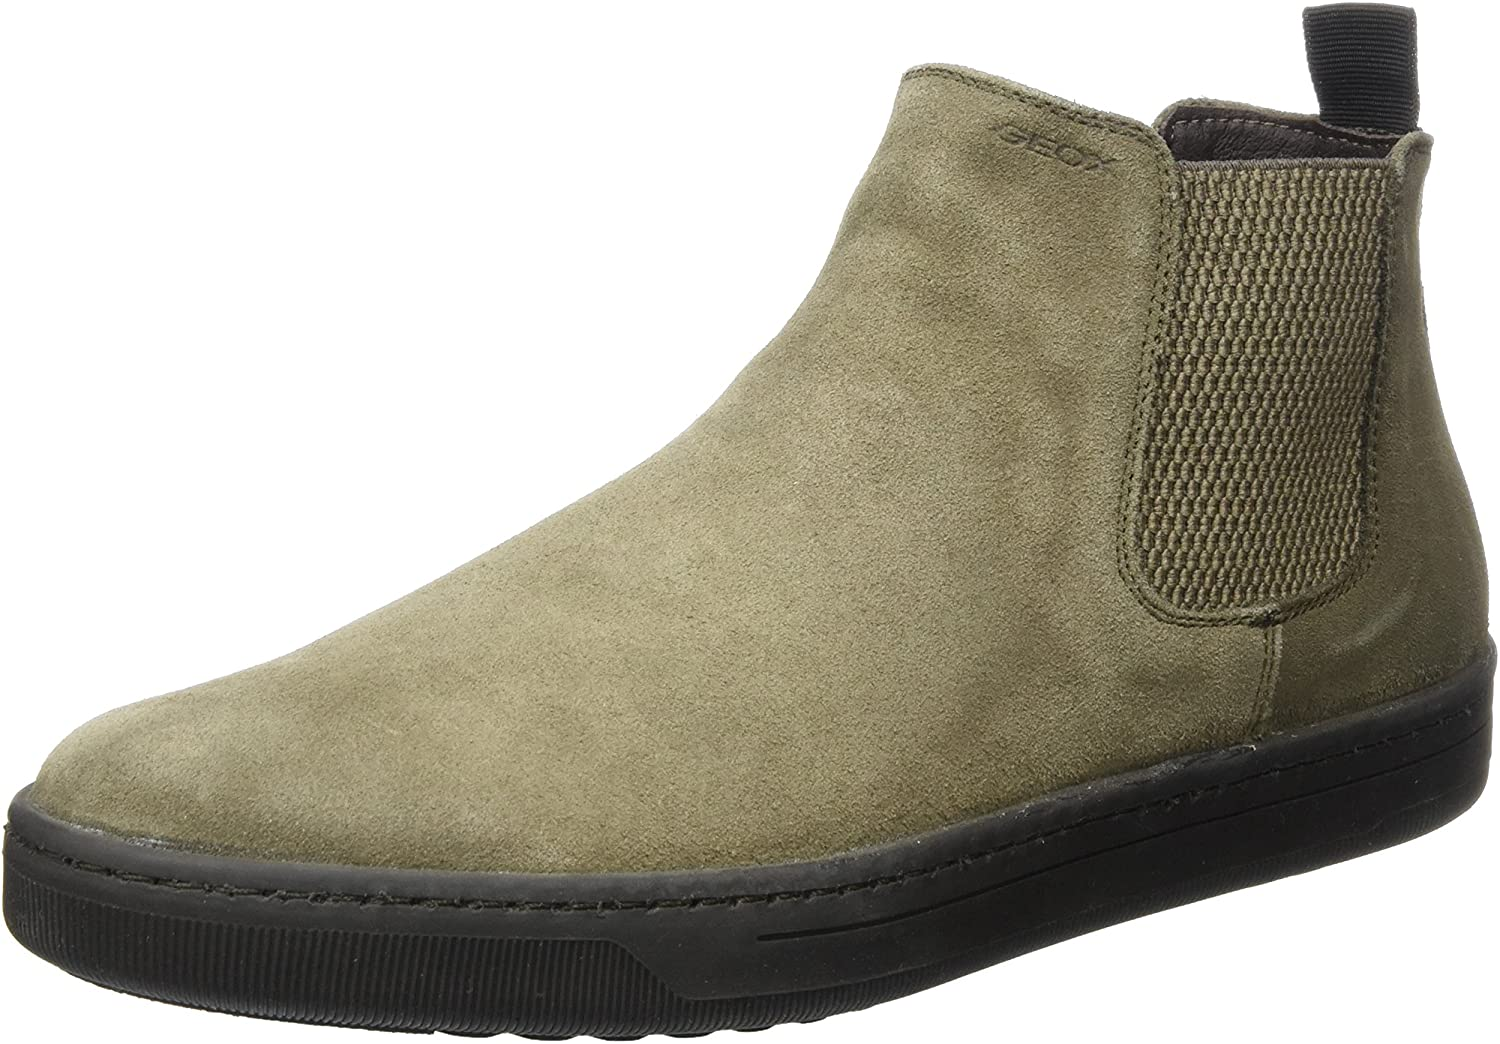 Geox Men's Chelsea Boots, Brown Taupe, 10 UK